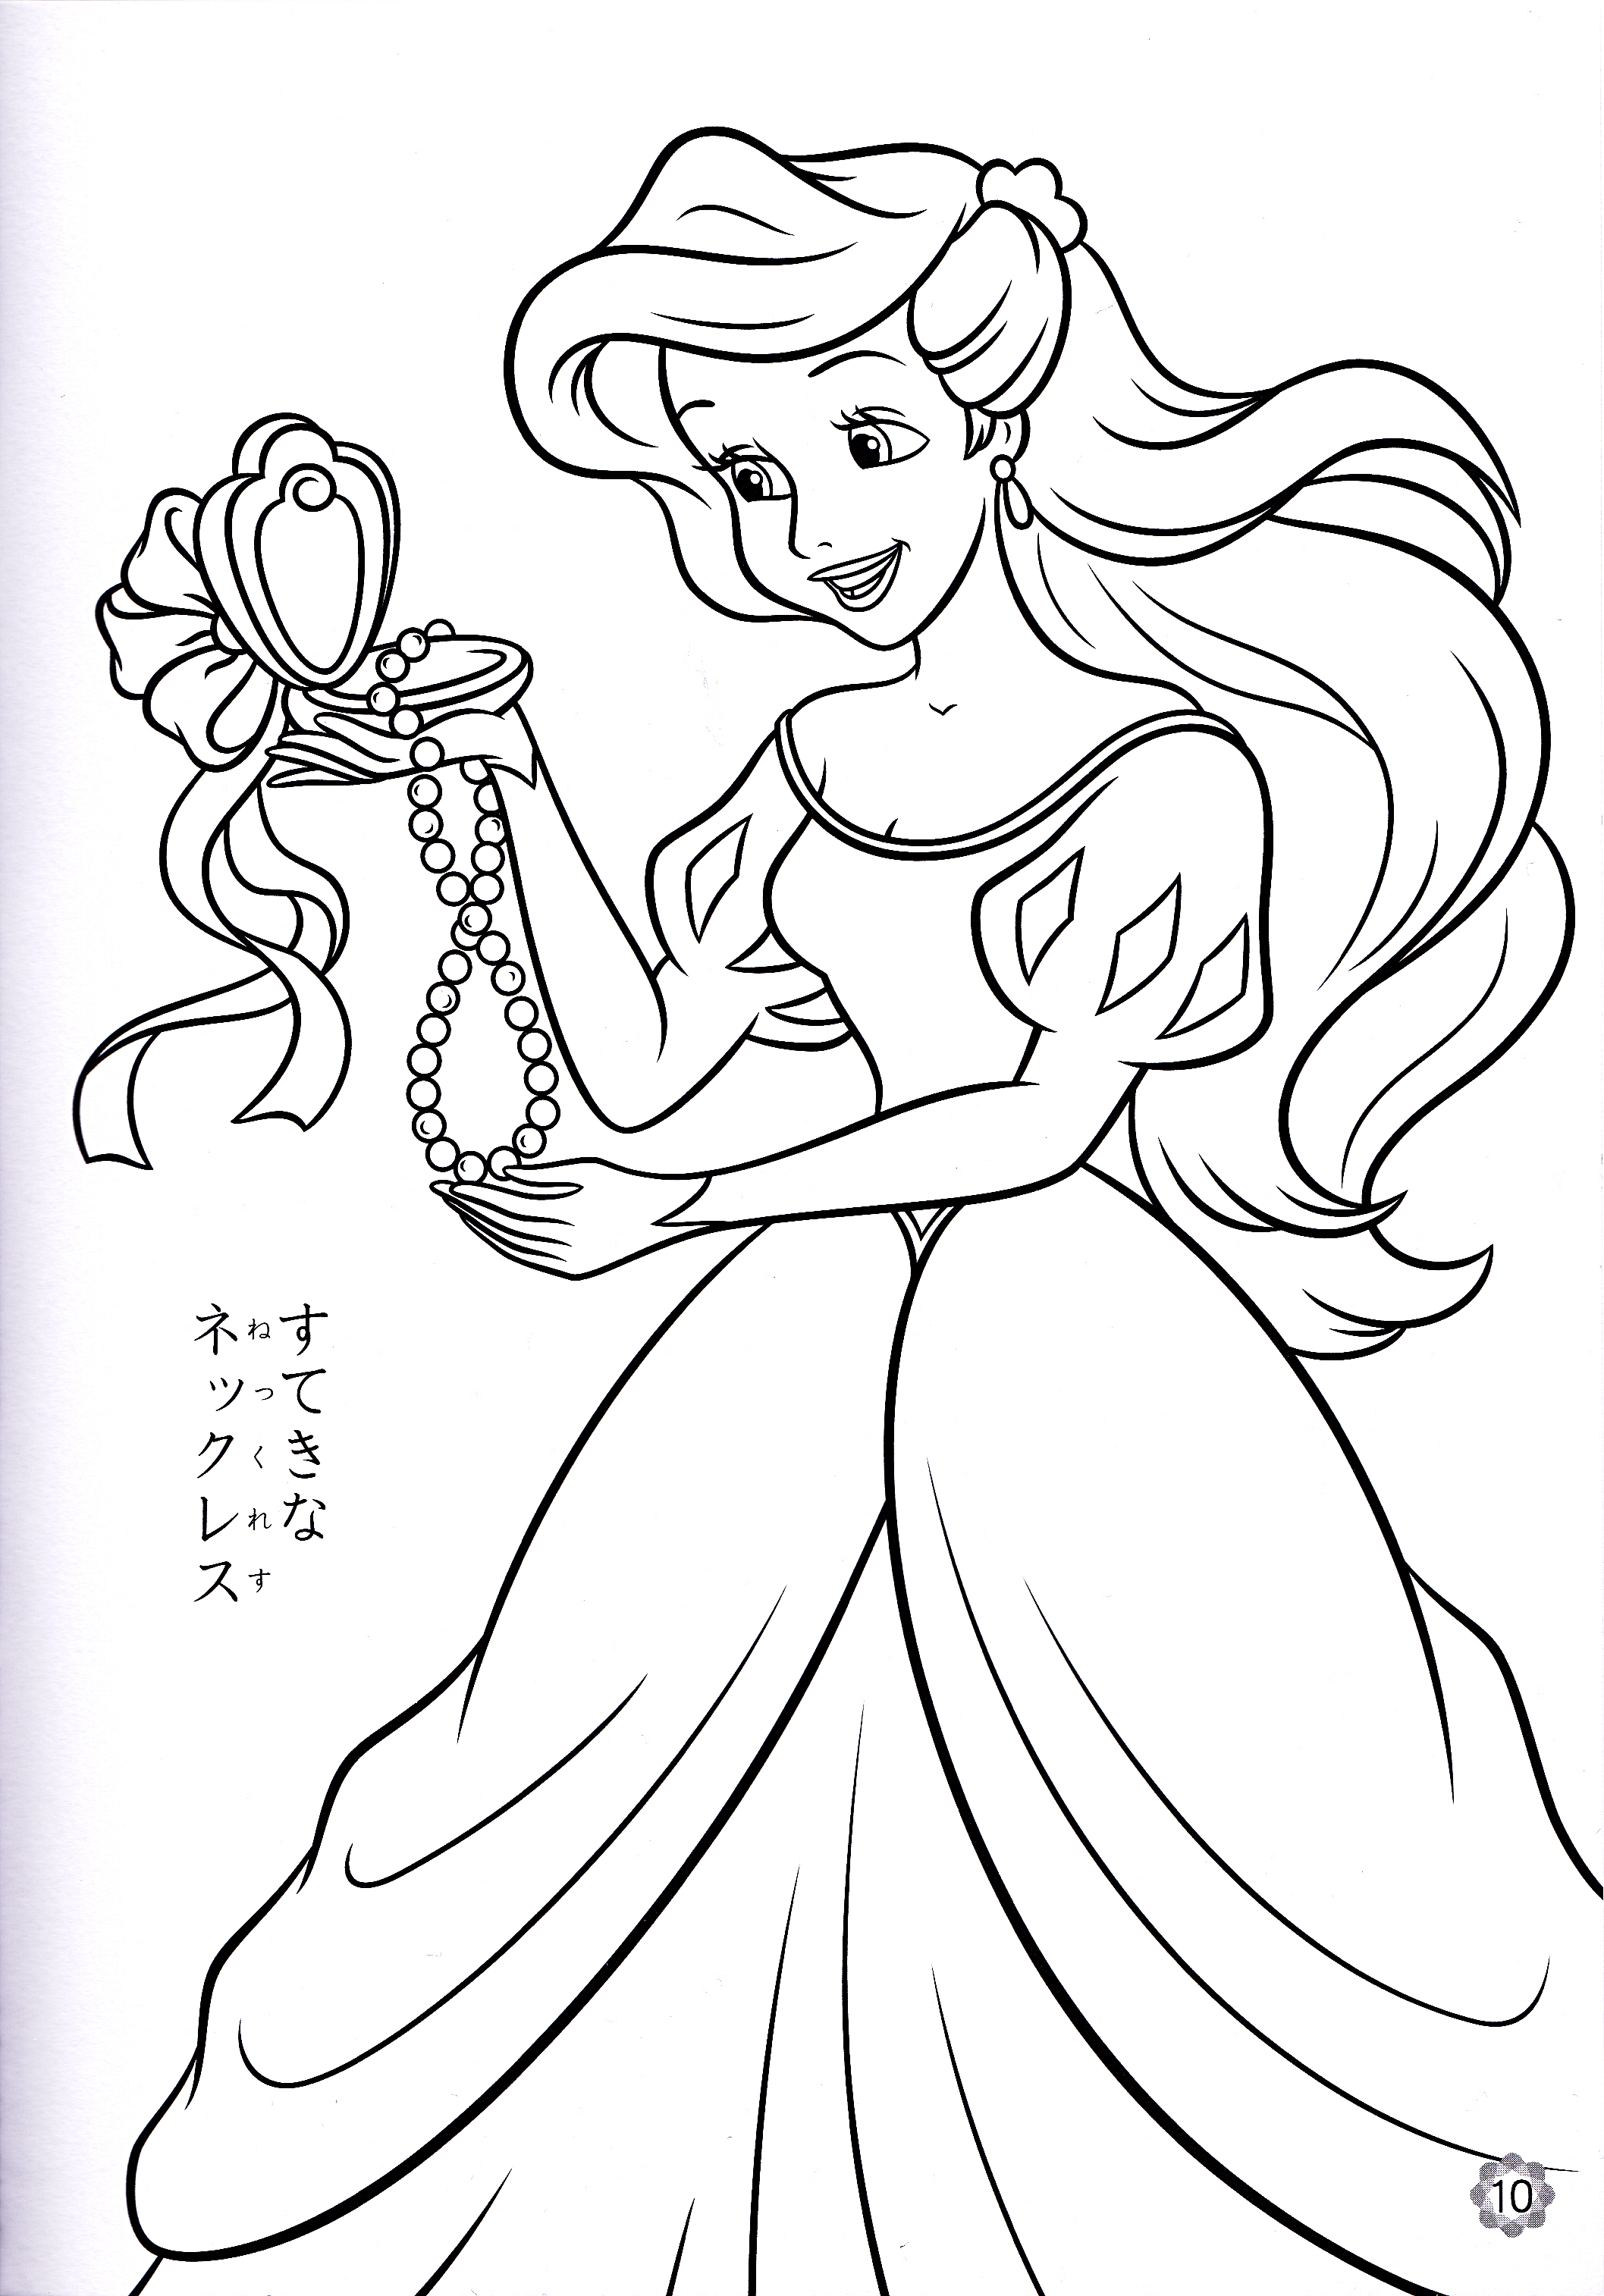 The Little Mermaid coloring page Colouring Book Pinterest